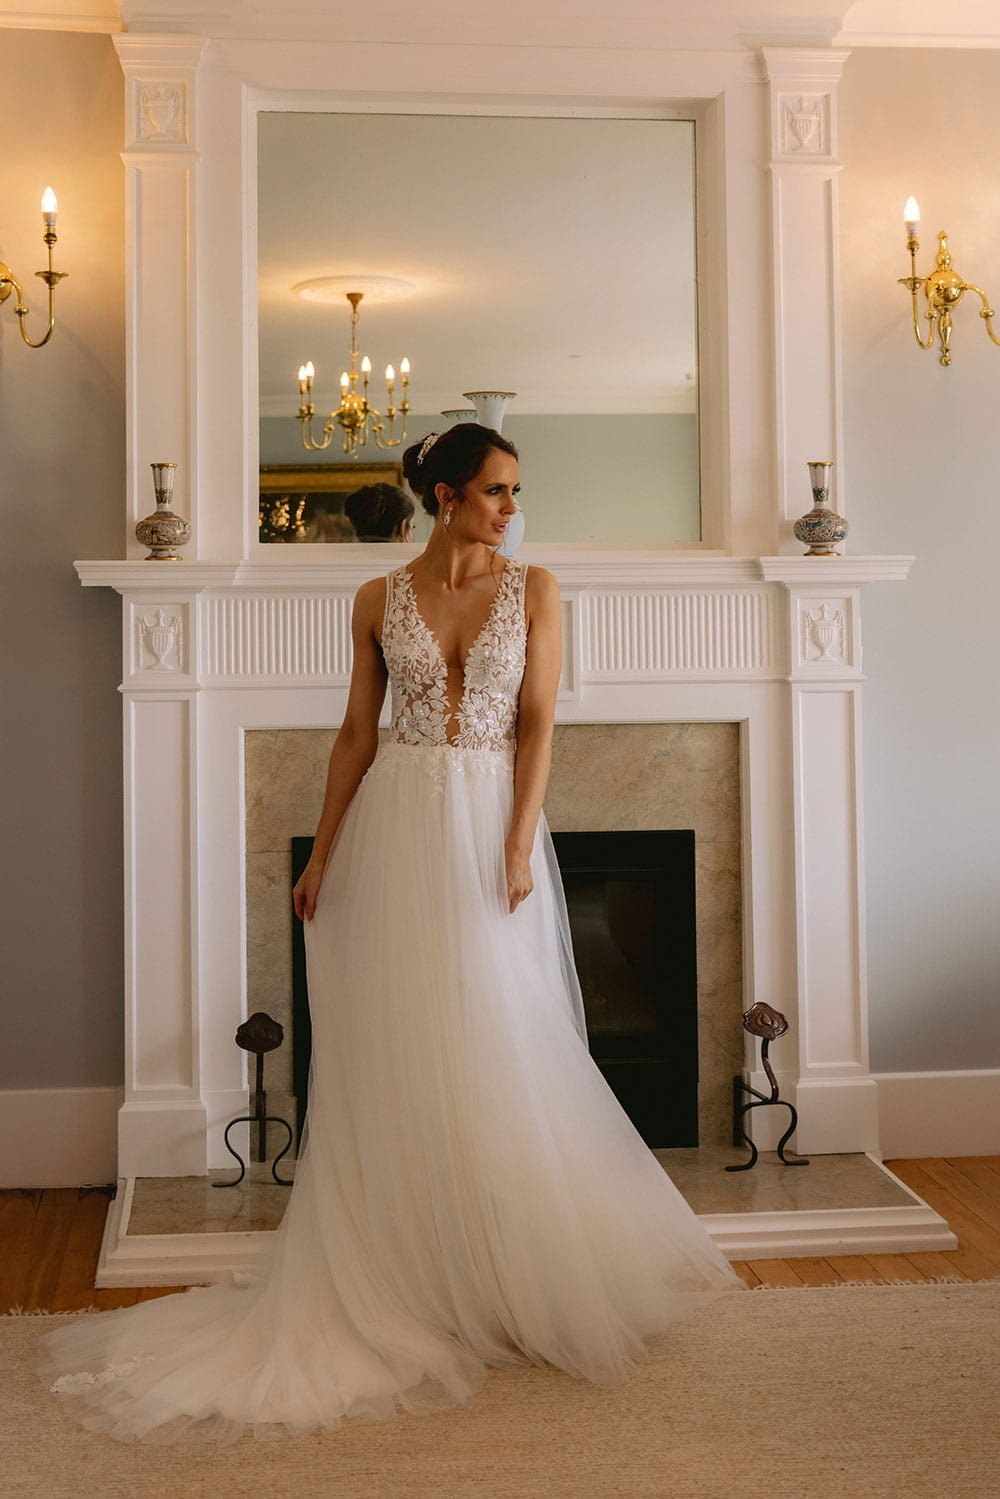 Tia Wedding gown from Vinka Design - This dreamy sculpted wedding dress has a deep V-shaped illusion neckline with beaded floral lace and an open back. The skirt has layers of soft tulle that glide with movement. Model wearing gown showing full length with train to the side, inside warmly lit heritage room.